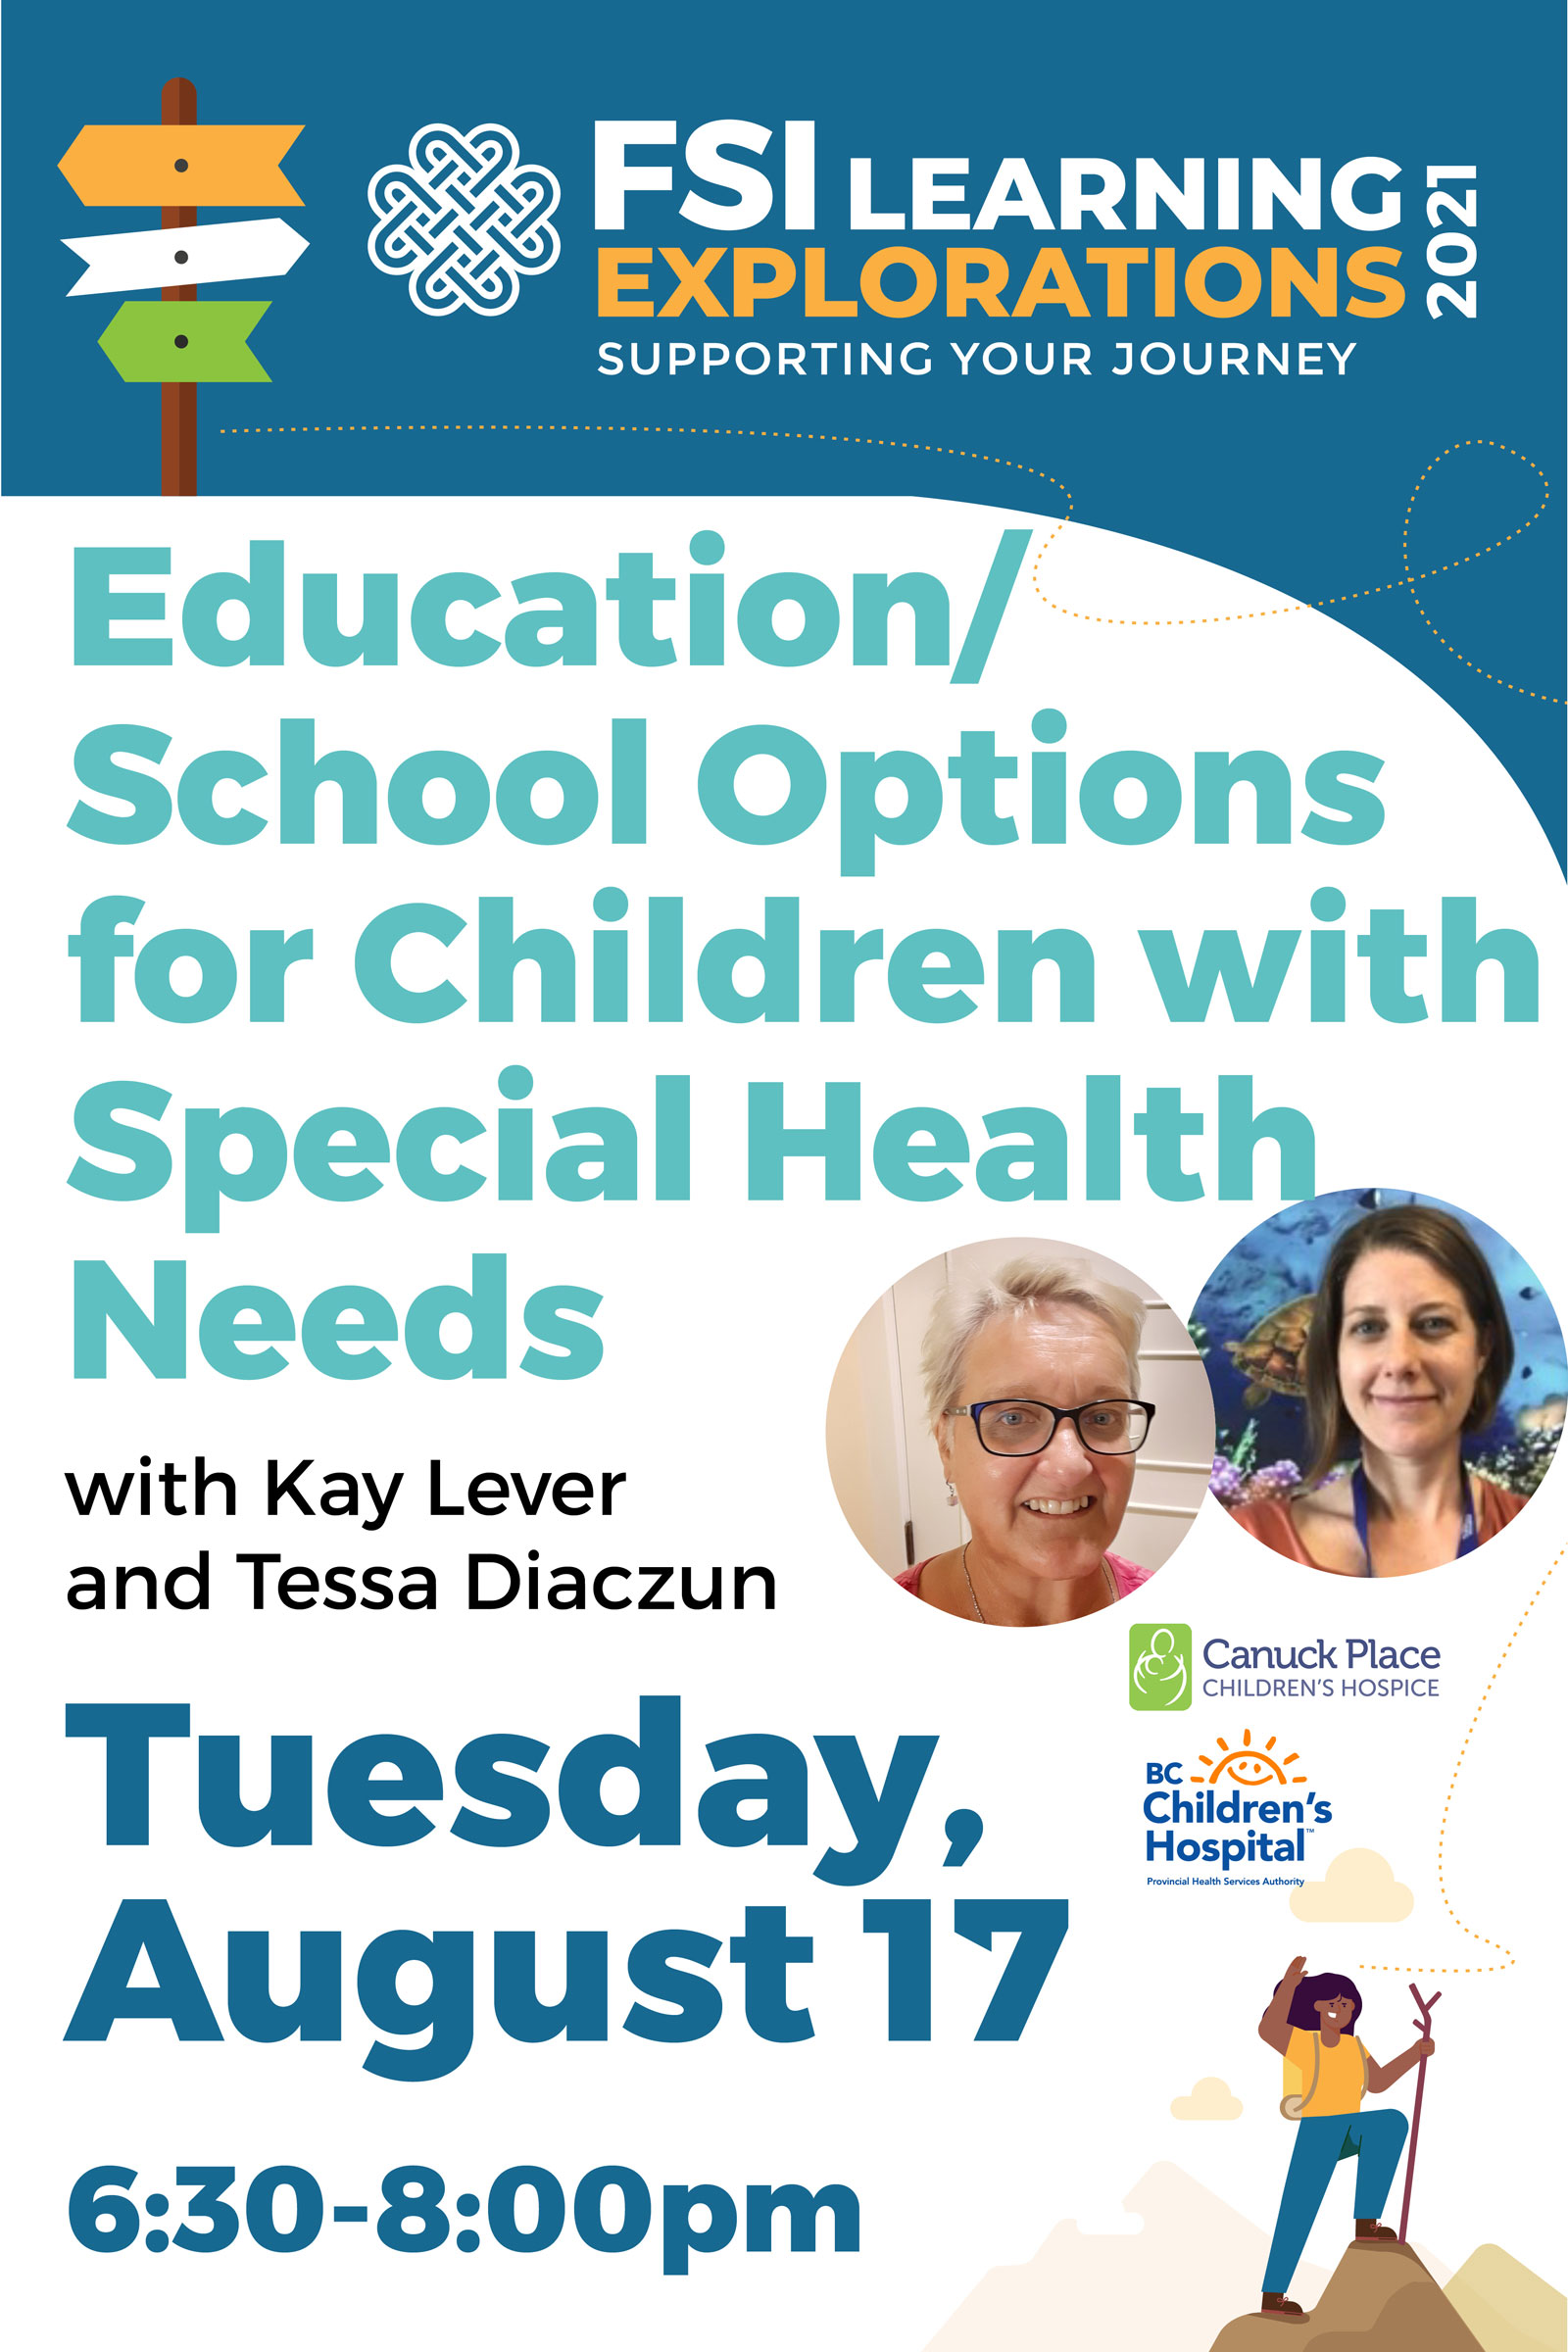 FSI Learning Explorations - Education/School Options for Children with Special Health Needs